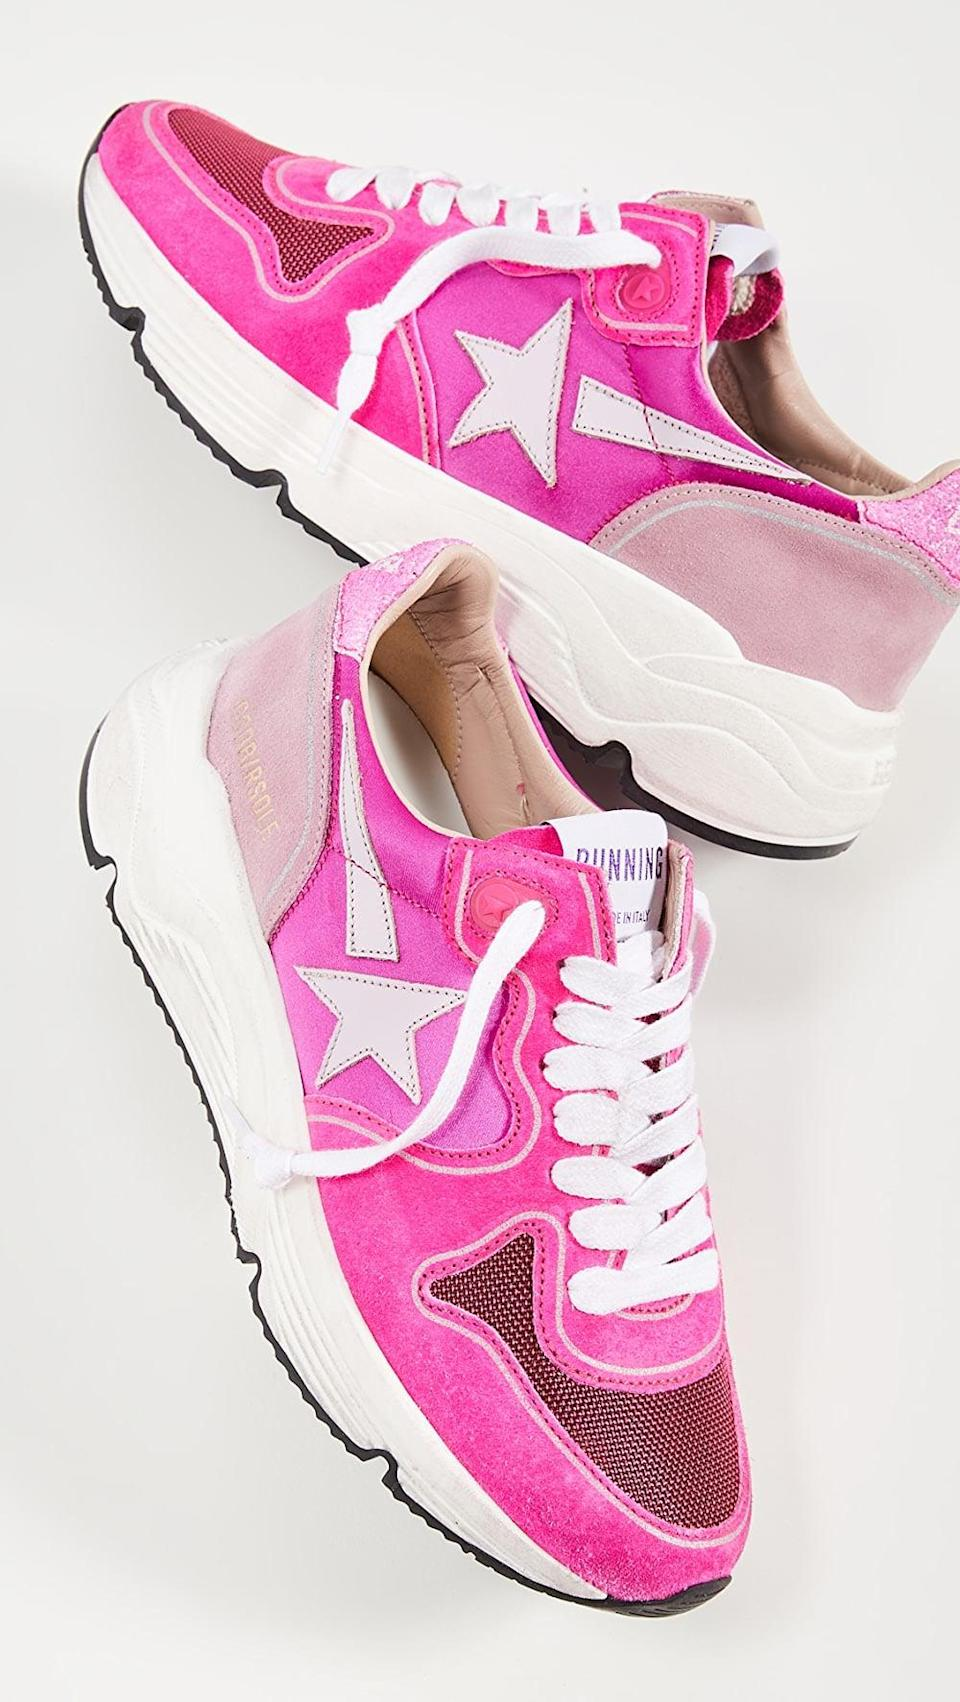 "<p>How cool are these <a href=""https://www.popsugar.com/buy/Golden-Goose-Running-Sole-Sneakers-584512?p_name=Golden%20Goose%20Running%20Sole%20Sneakers&retailer=shopbop.com&pid=584512&price=560&evar1=fab%3Aus&evar9=47571677&evar98=https%3A%2F%2Fwww.popsugar.com%2Ffashion%2Fphoto-gallery%2F47571677%2Fimage%2F47571941%2FGolden-Goose-Running-Sole-Sneakers&list1=shopping%2Cshoes%2Csneakers%2Csummer%2Csummer%20fashion%2Cfashion%20shopping&prop13=mobile&pdata=1"" rel=""nofollow noopener"" class=""link rapid-noclick-resp"" target=""_blank"" data-ylk=""slk:Golden Goose Running Sole Sneakers"">Golden Goose Running Sole Sneakers</a> ($560)?</p>"